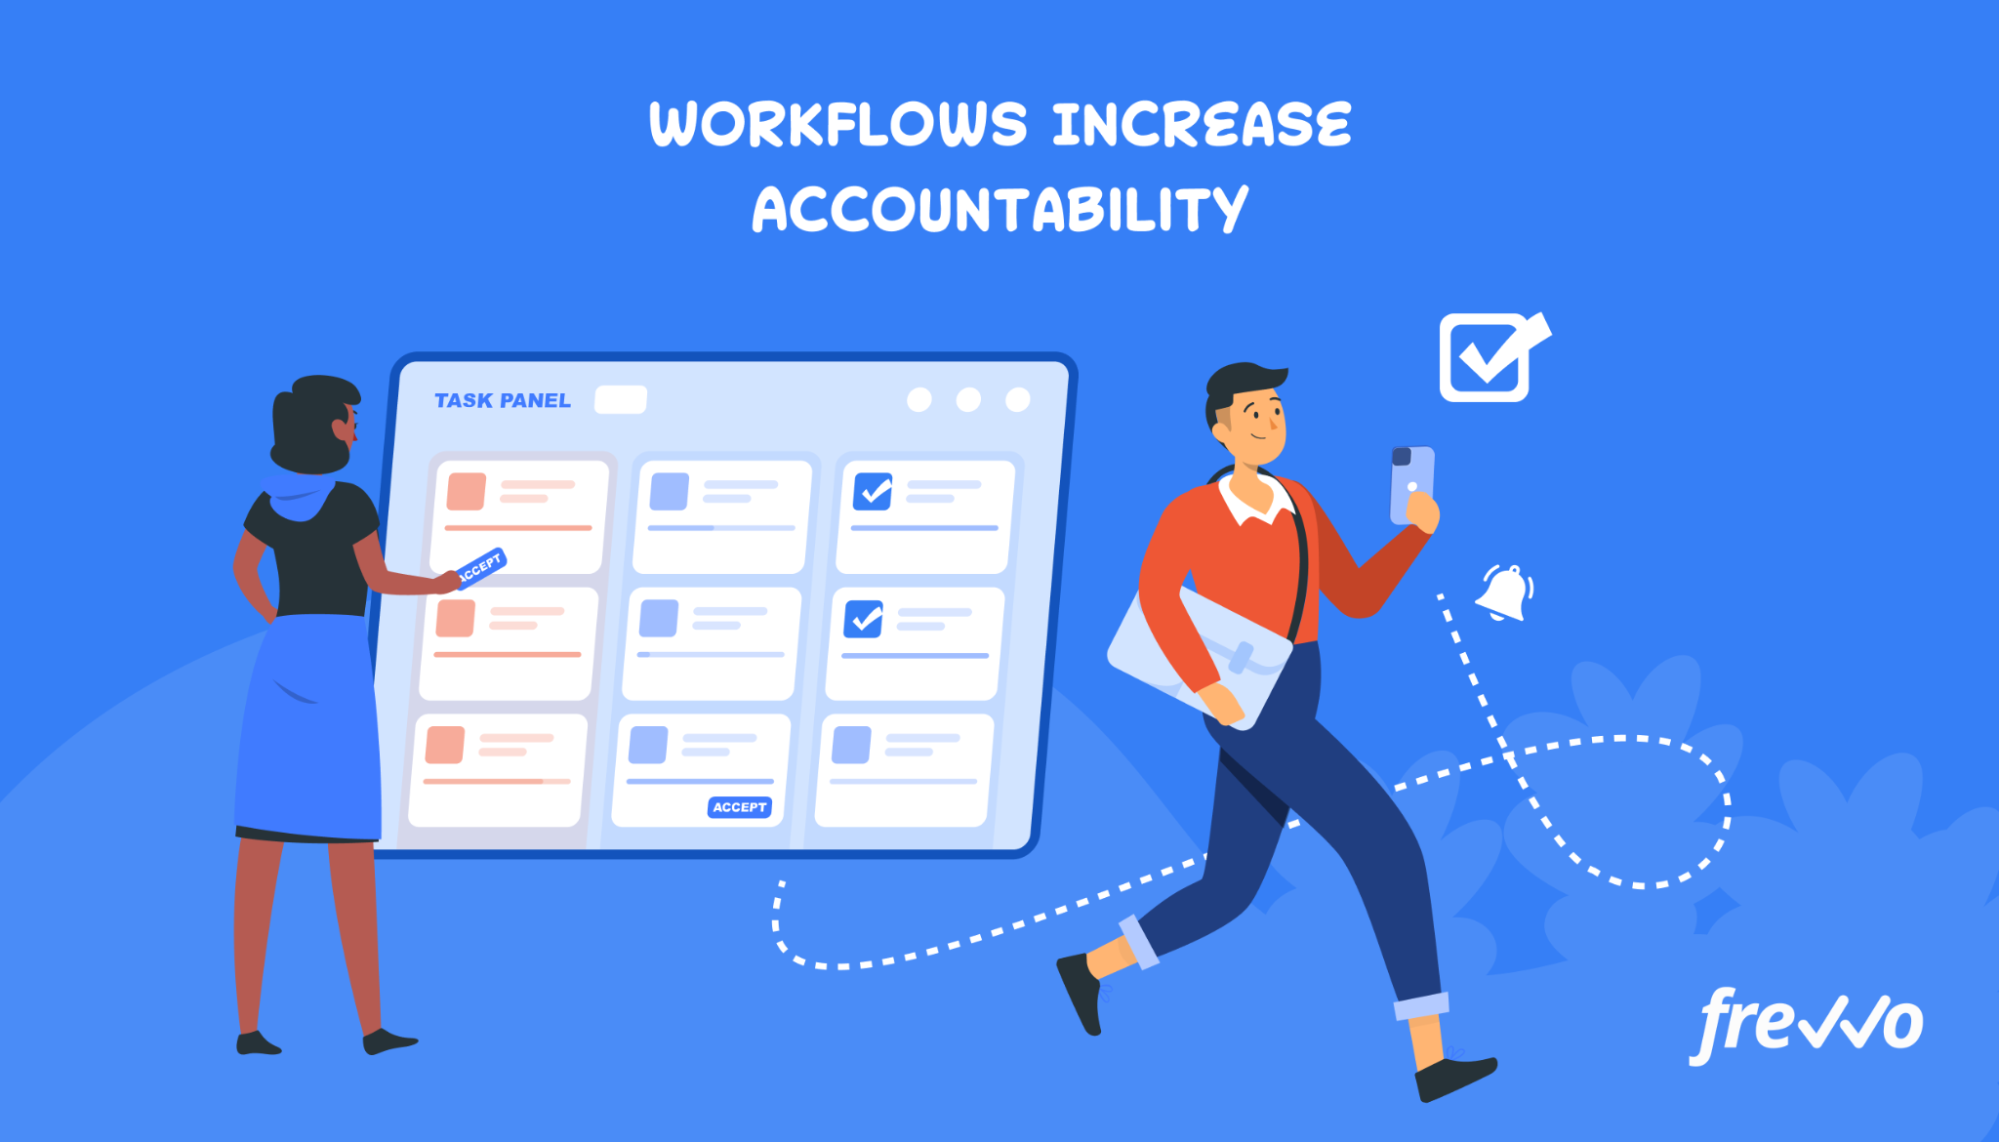 Automating workflows to increase accountability